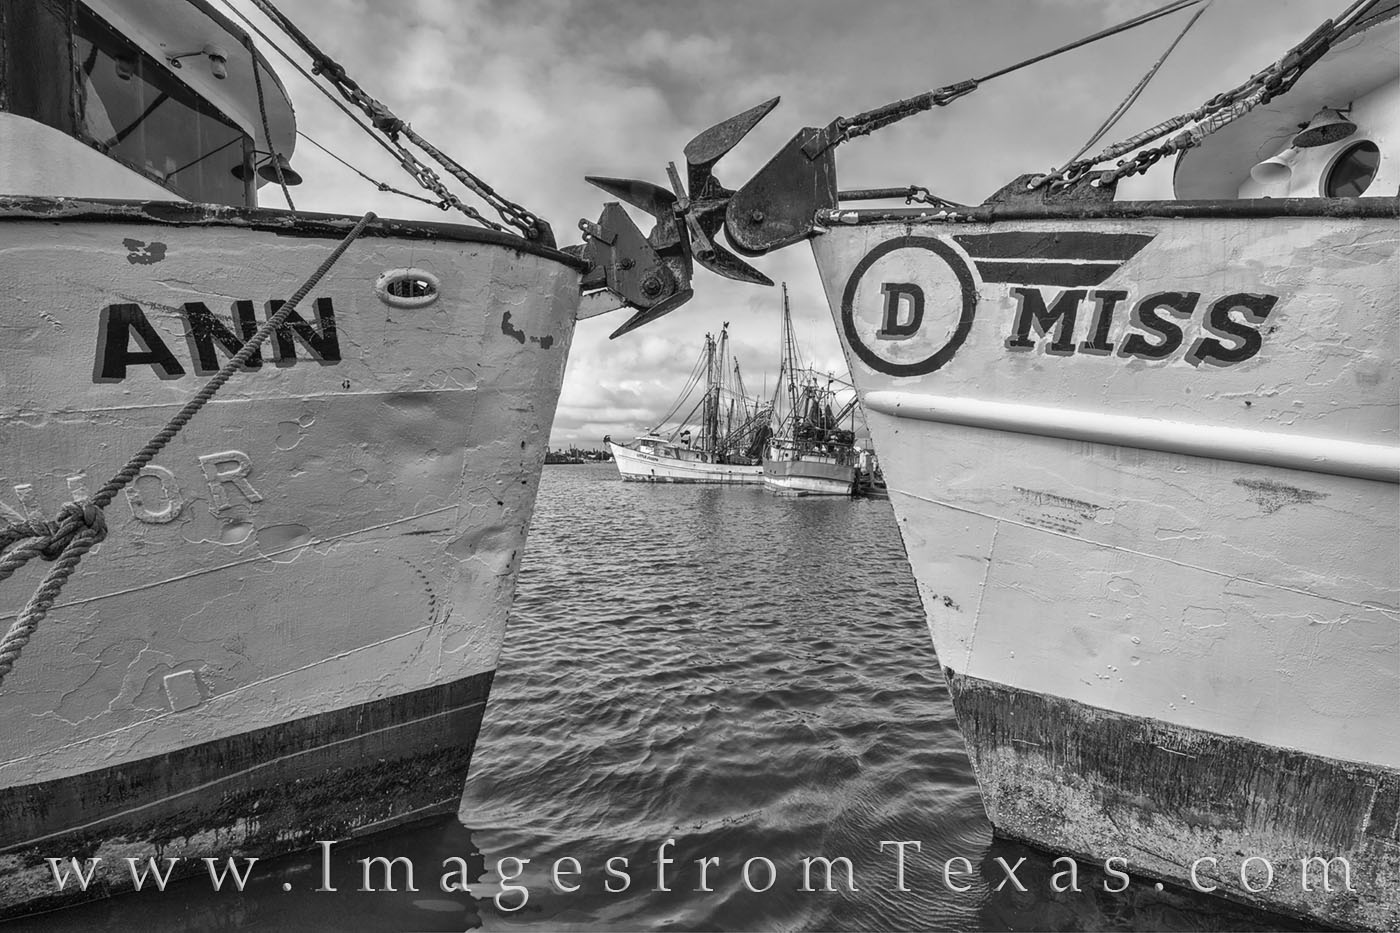 shrimp boats, port isabel, boats, south padre, texas coast, shrimpers, gulf of mexico, south bay, ocean, black and white, photo